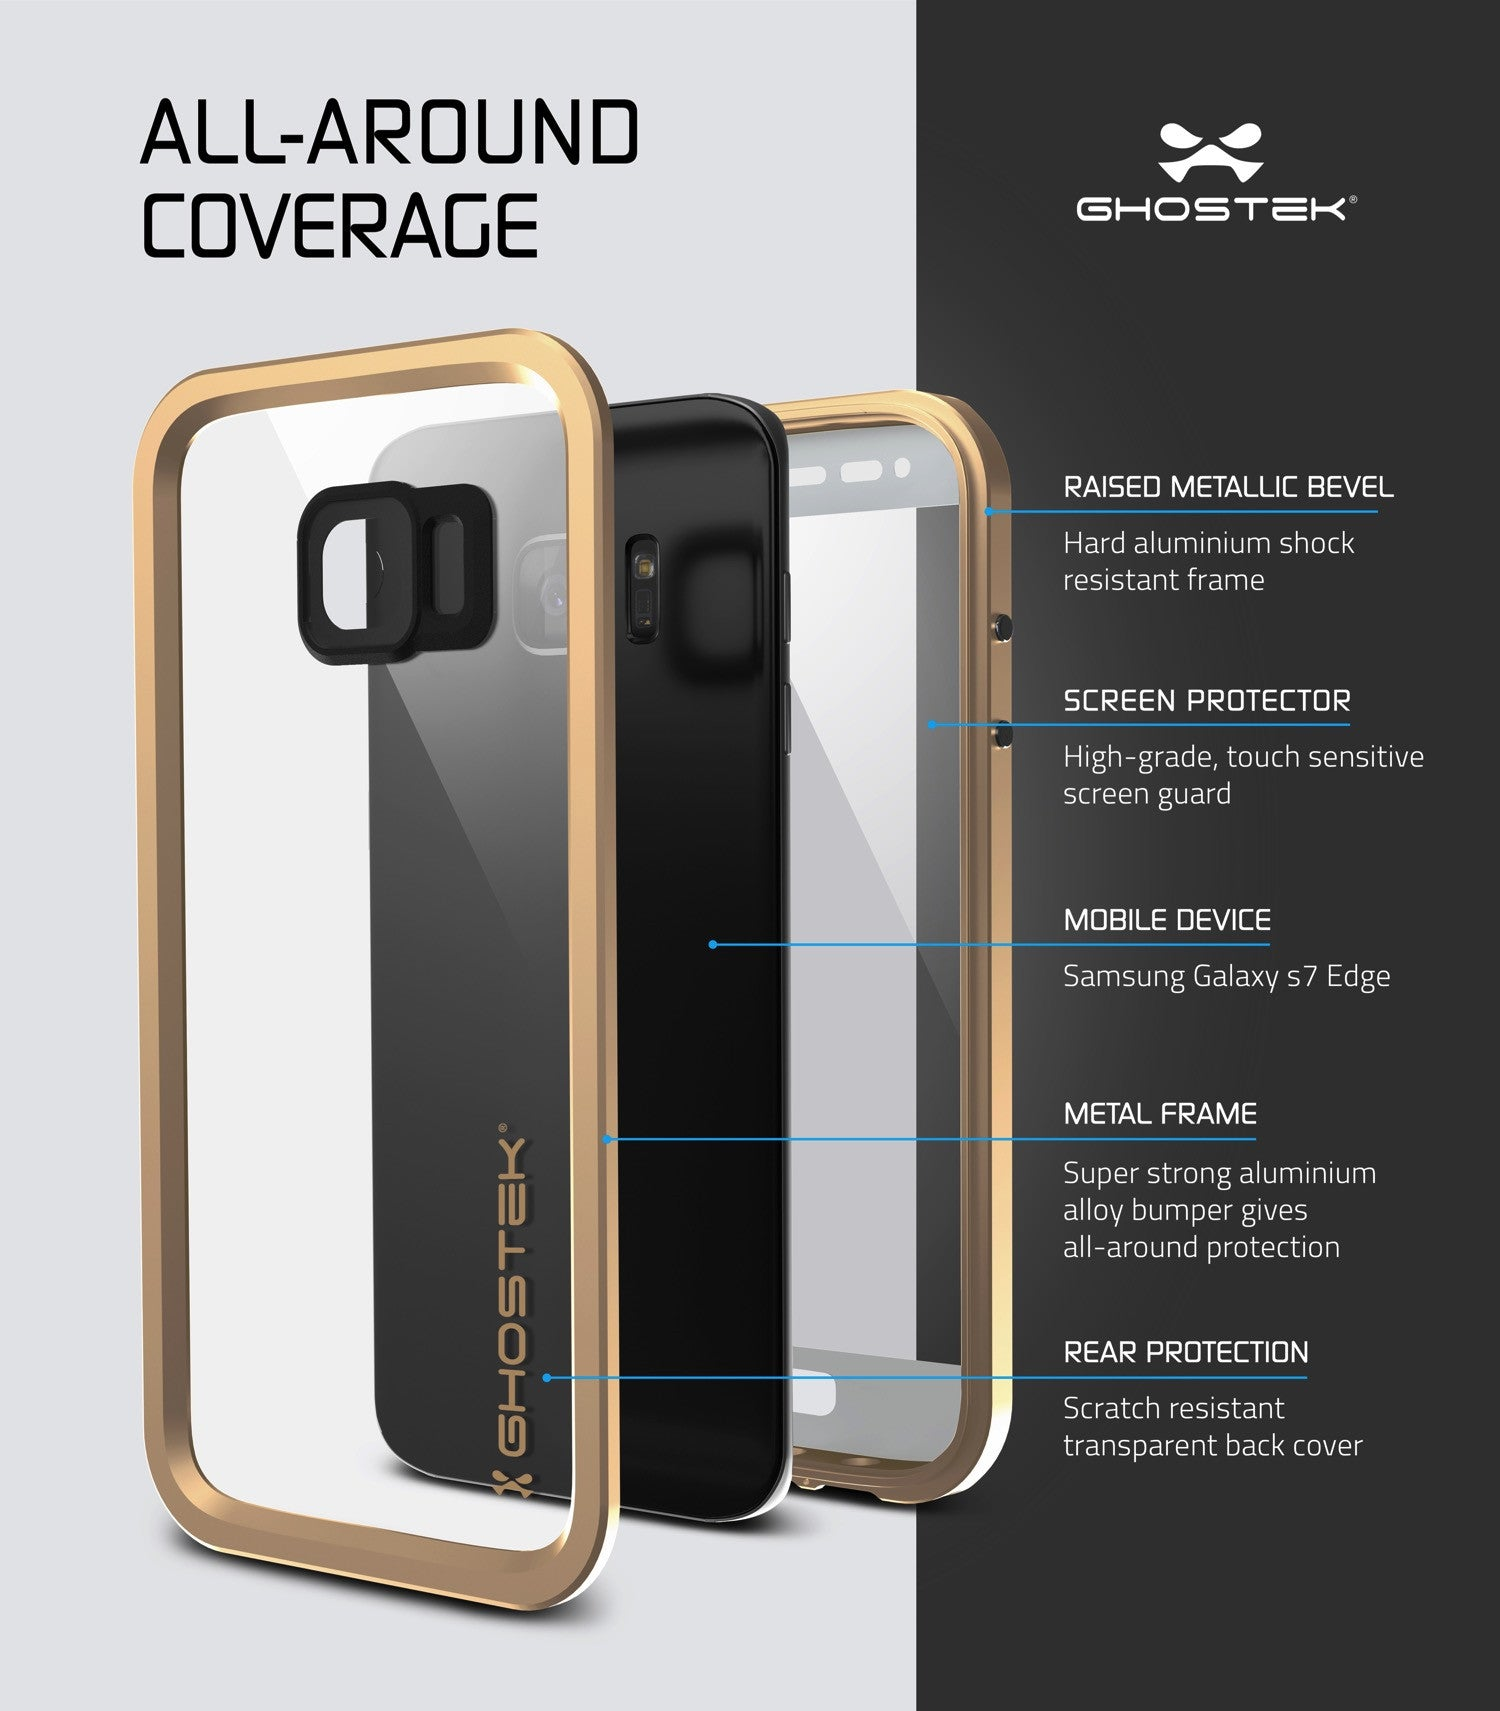 galaxy s7 edge waterproof case ghostek atomic 2 0 gold